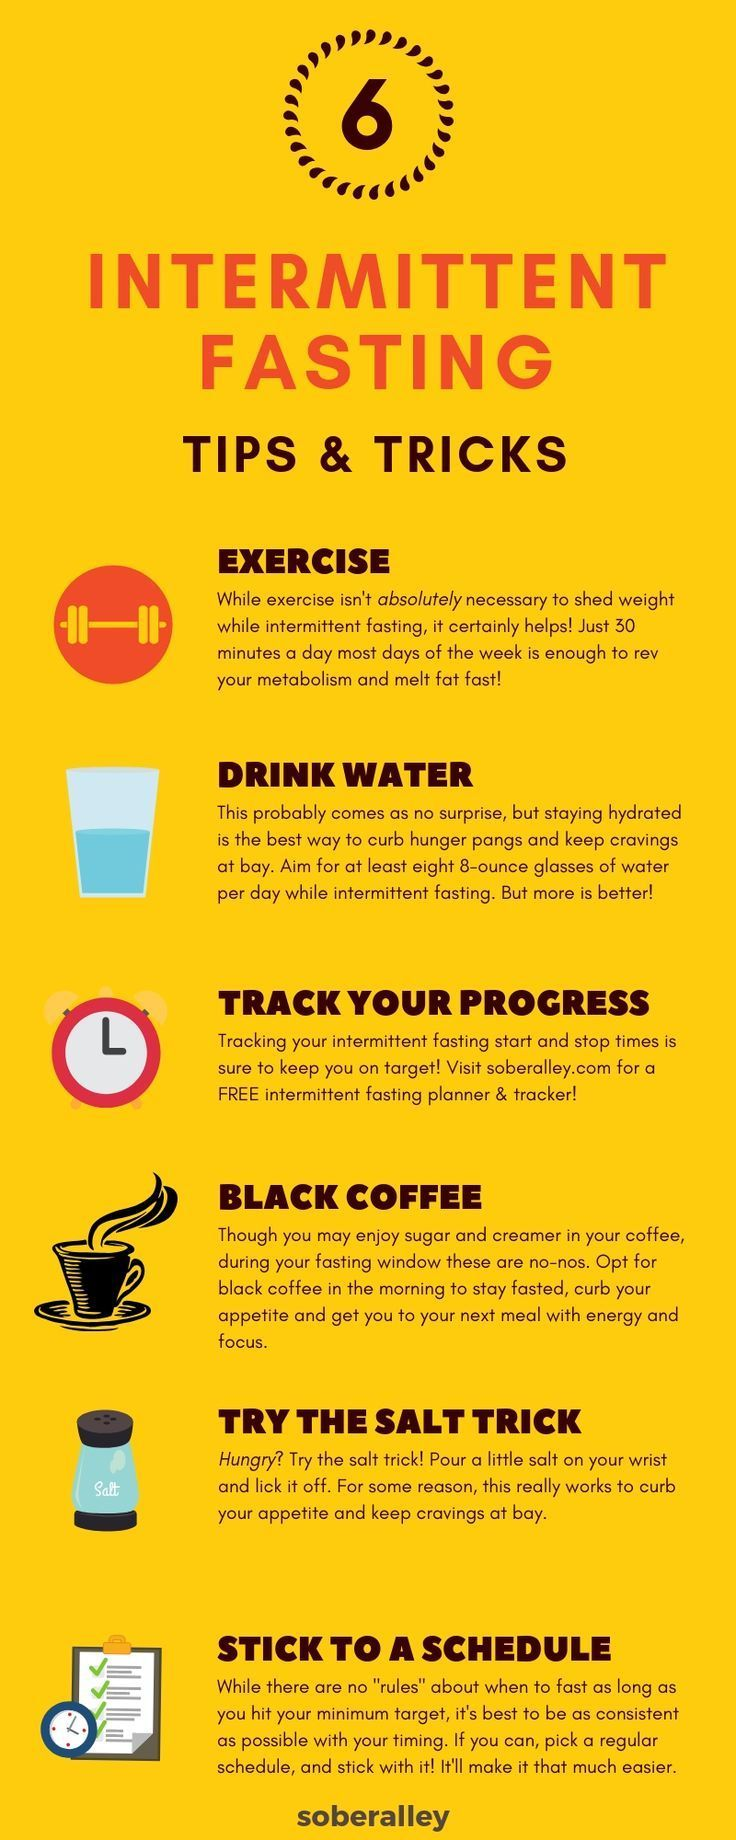 Is it bad to lose weight fast